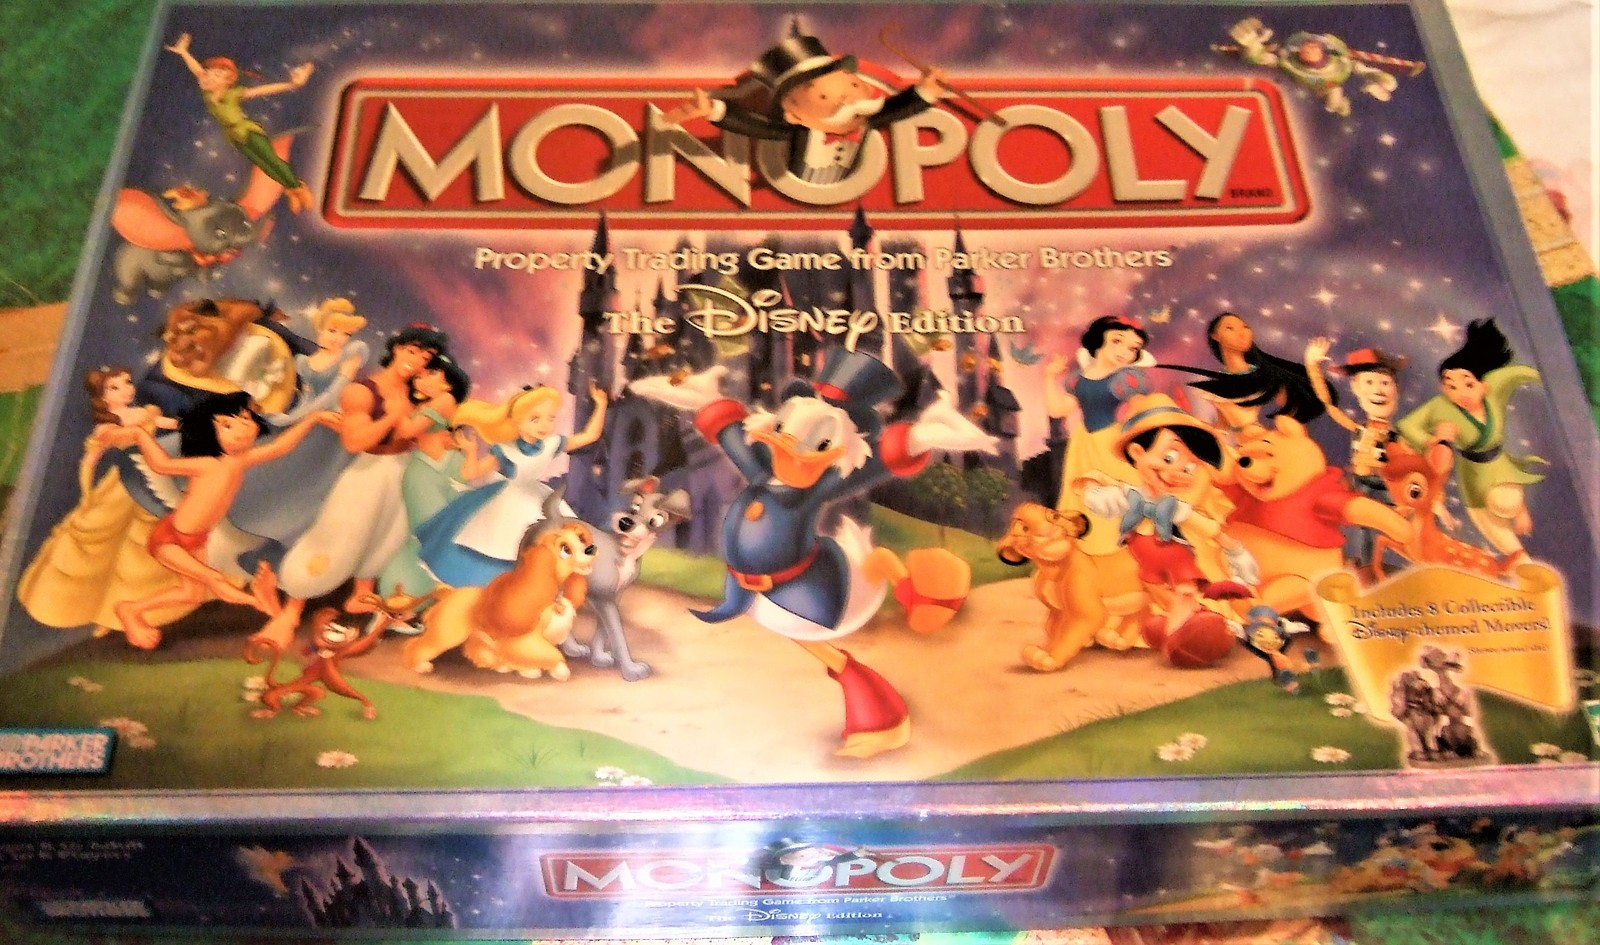 Monopoly - Property Trading Game From Parker Brothers - The Disney Edition  2001 image 4